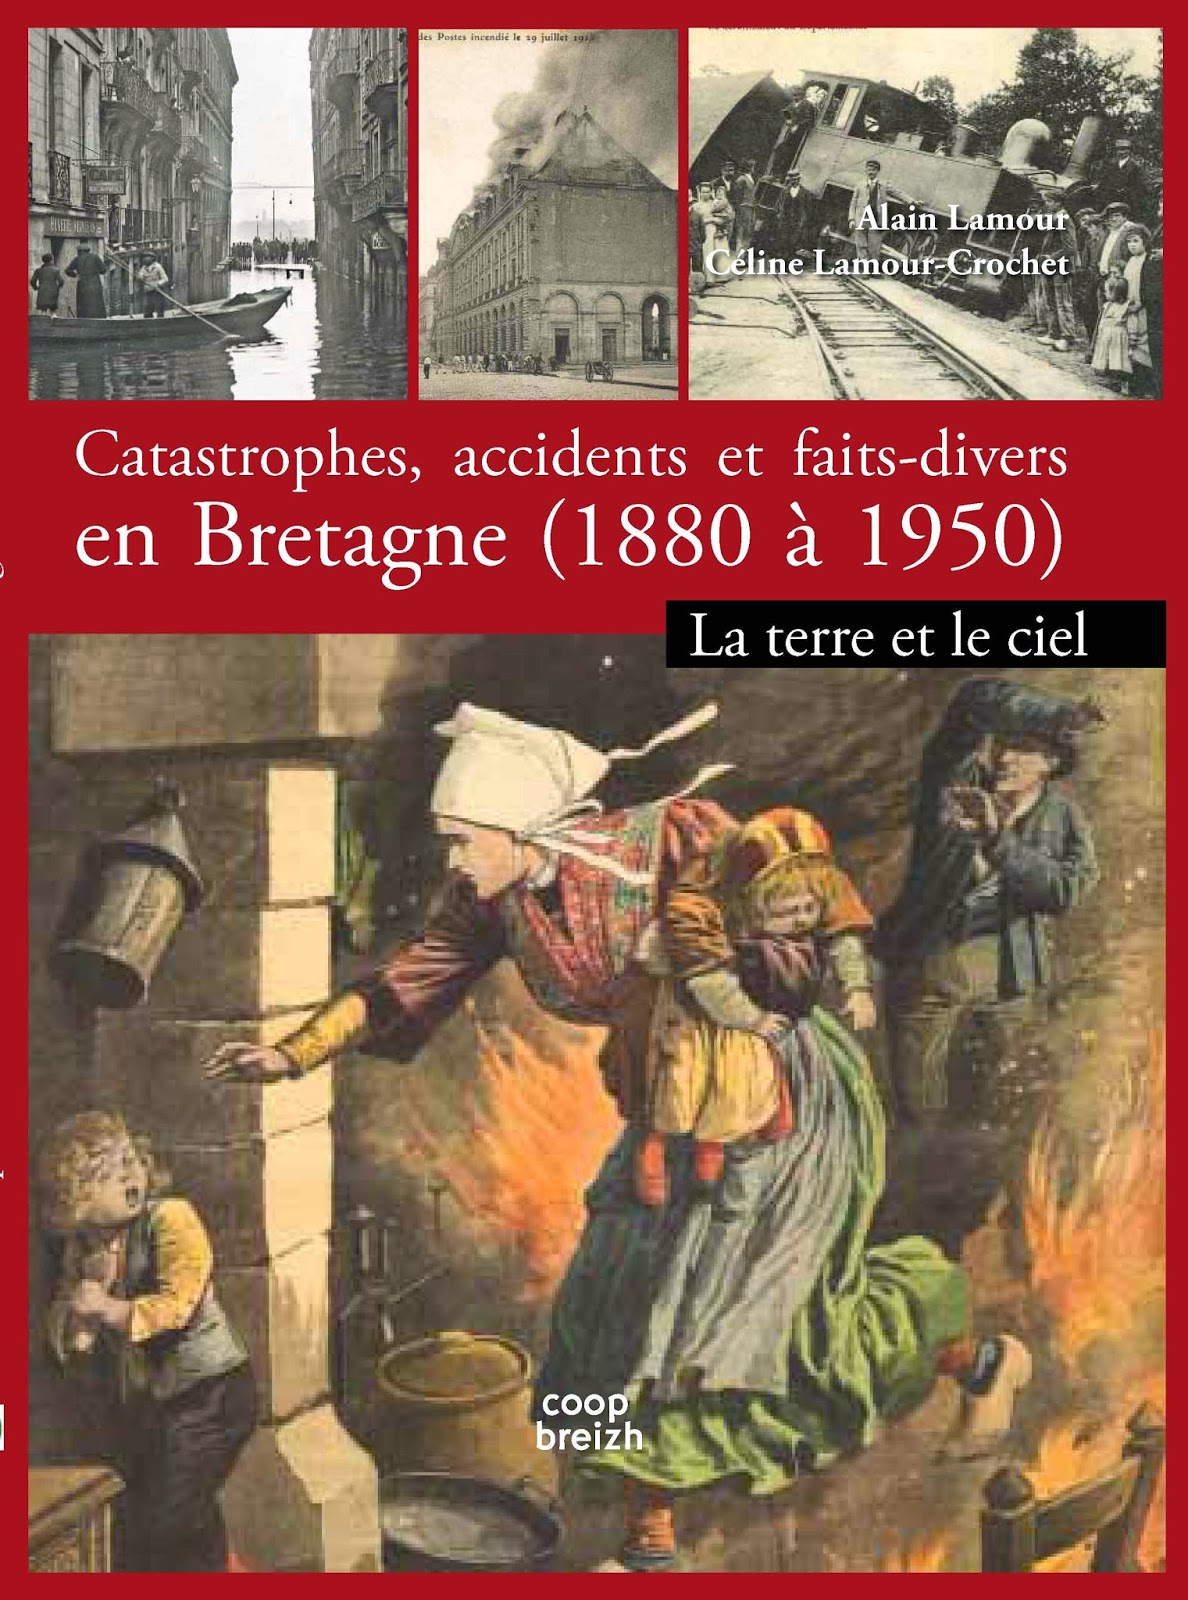 http://www.amazon.fr/catastrophes-accidents-faits-divers-Bretagne/dp/2843466636/ref=sr_1_46?s=books&ie=UTF8&qid=1401203534&sr=1-46&keywords=c%C3%A9line+lamour-crochet